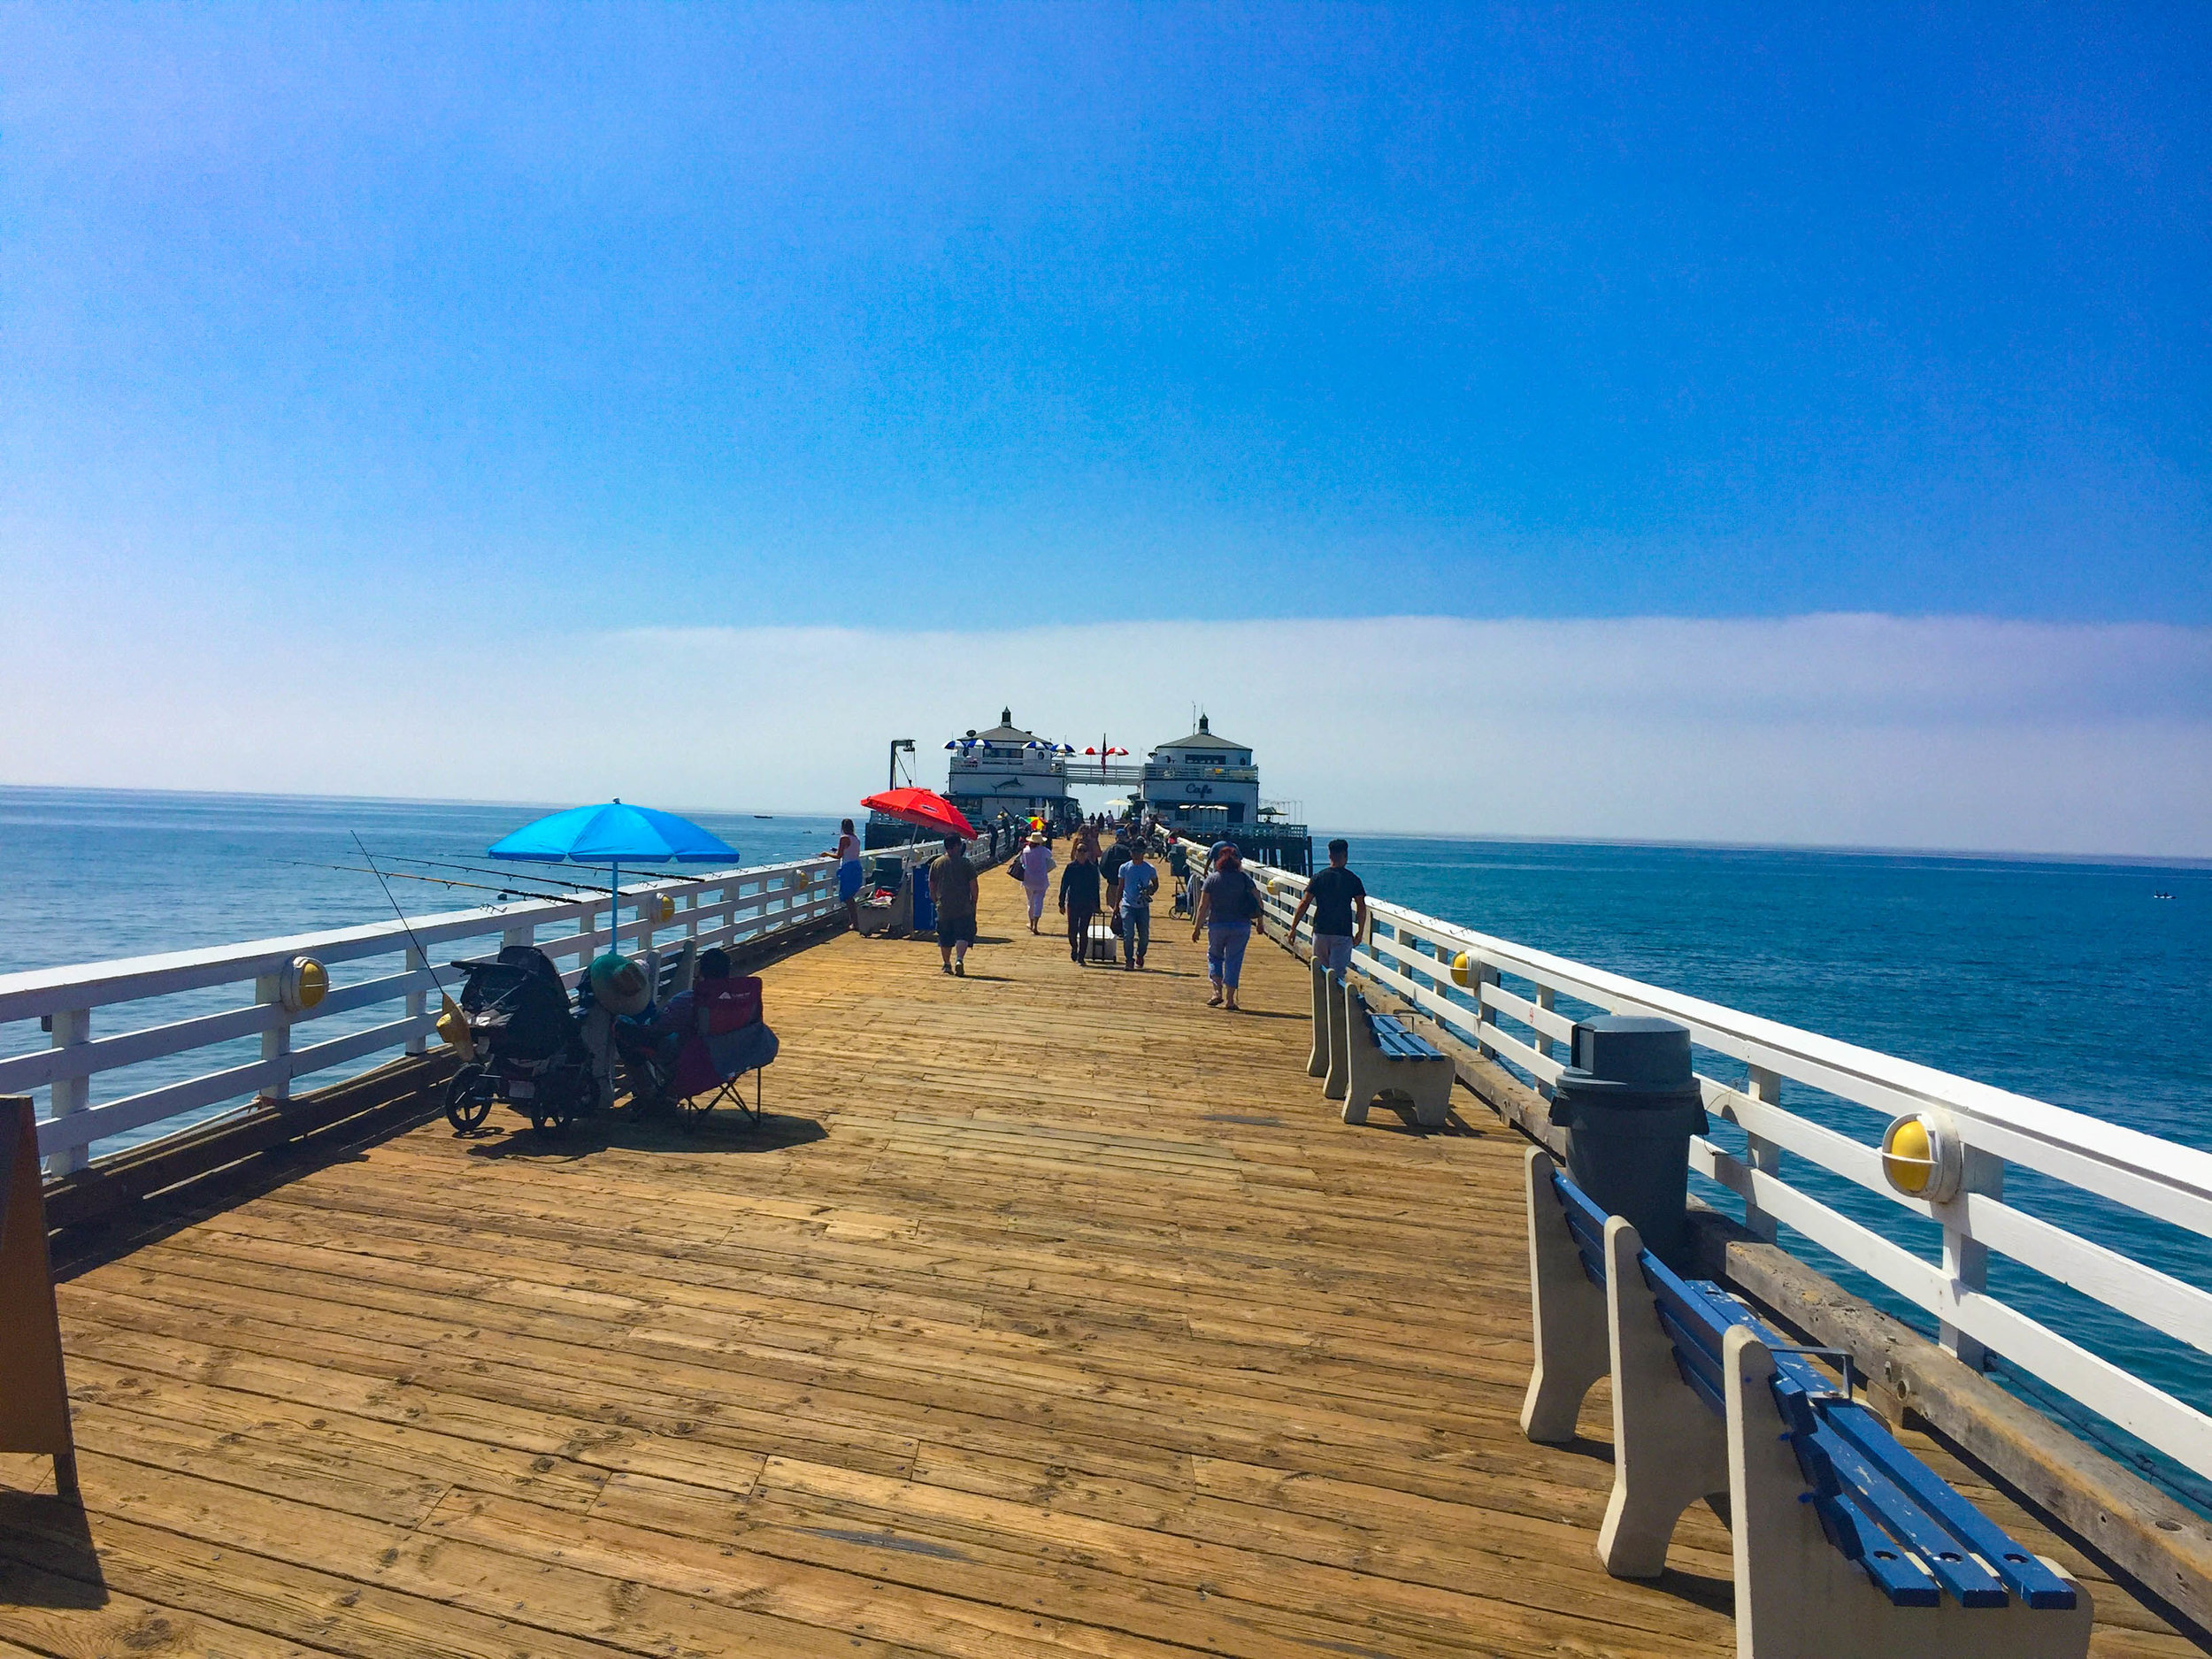 Malibu Farm Brunch Spot on the pier in Los Angeles